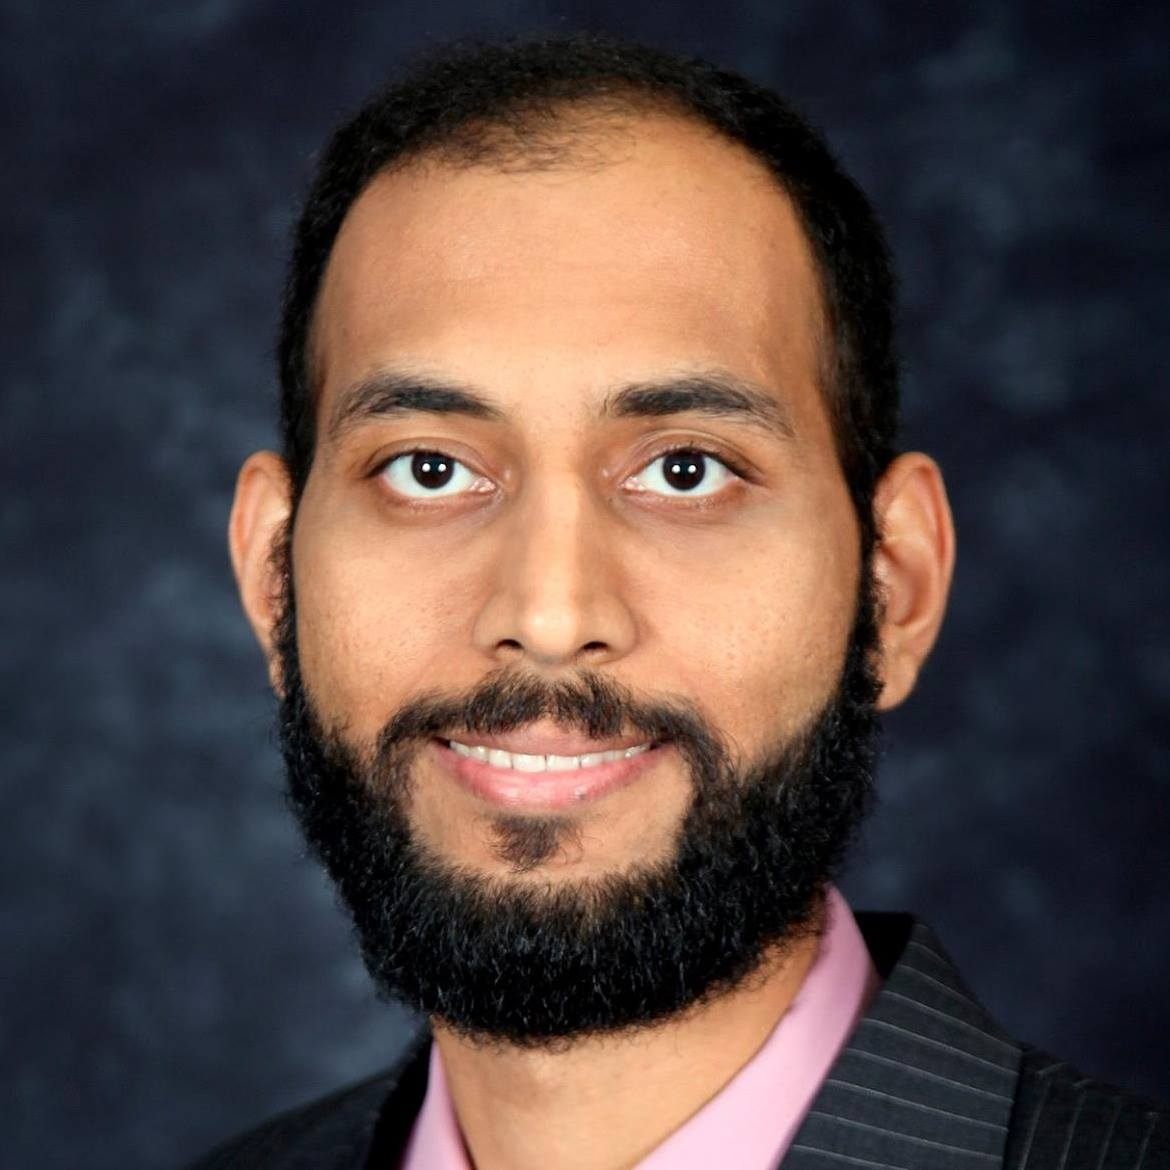 Moiz Neemuchwala, Product Manager - Innovation